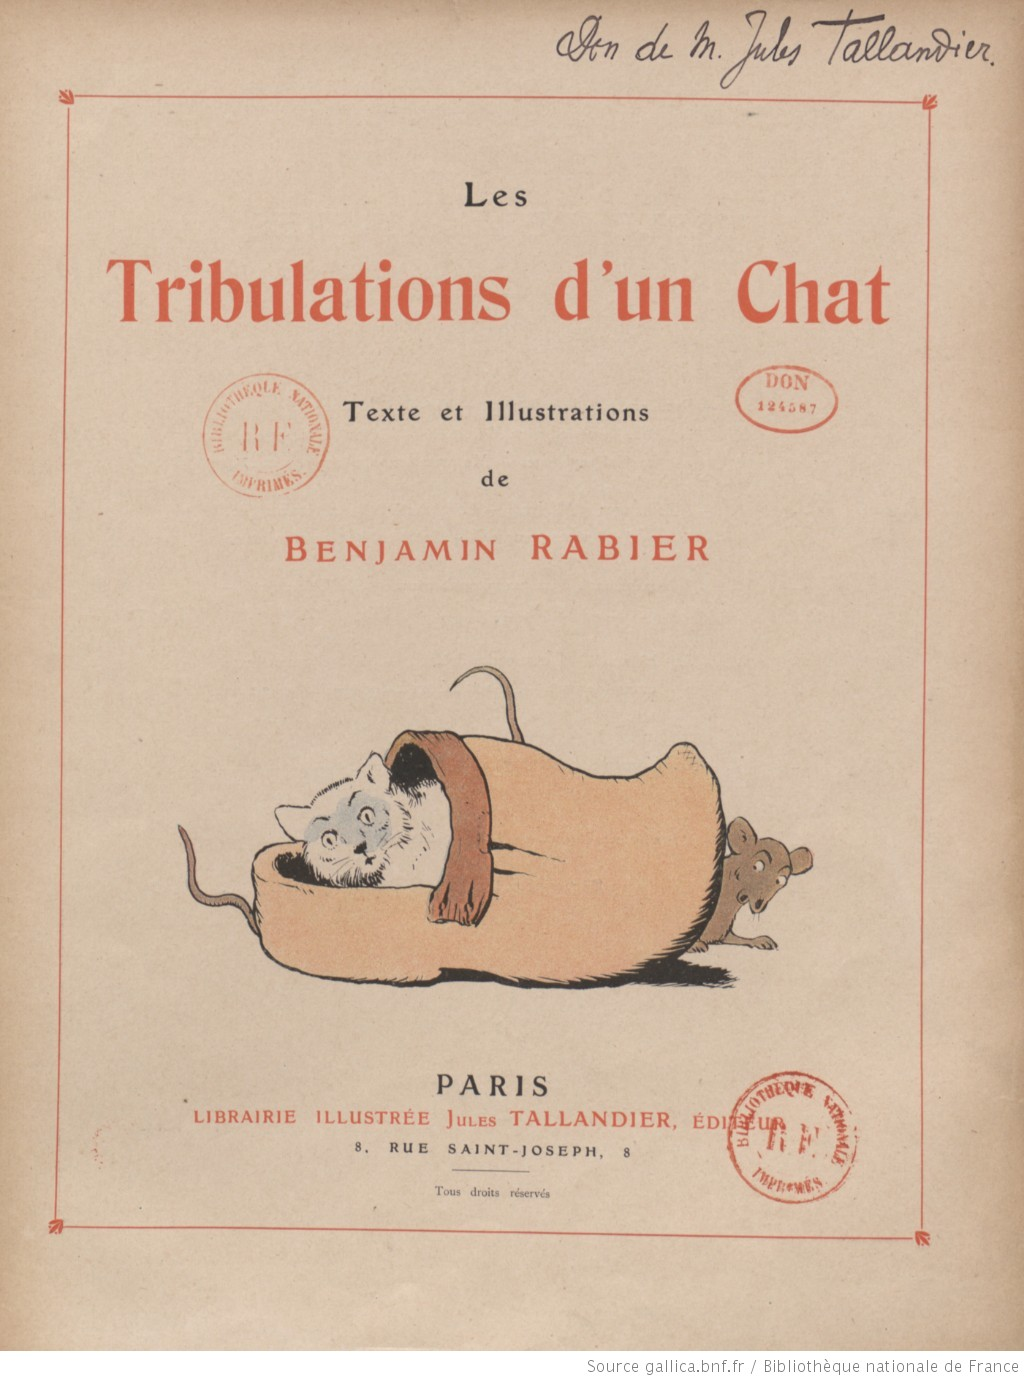 Les Tribulations d'un chat, texte et illustrations de Benjamin Rabier